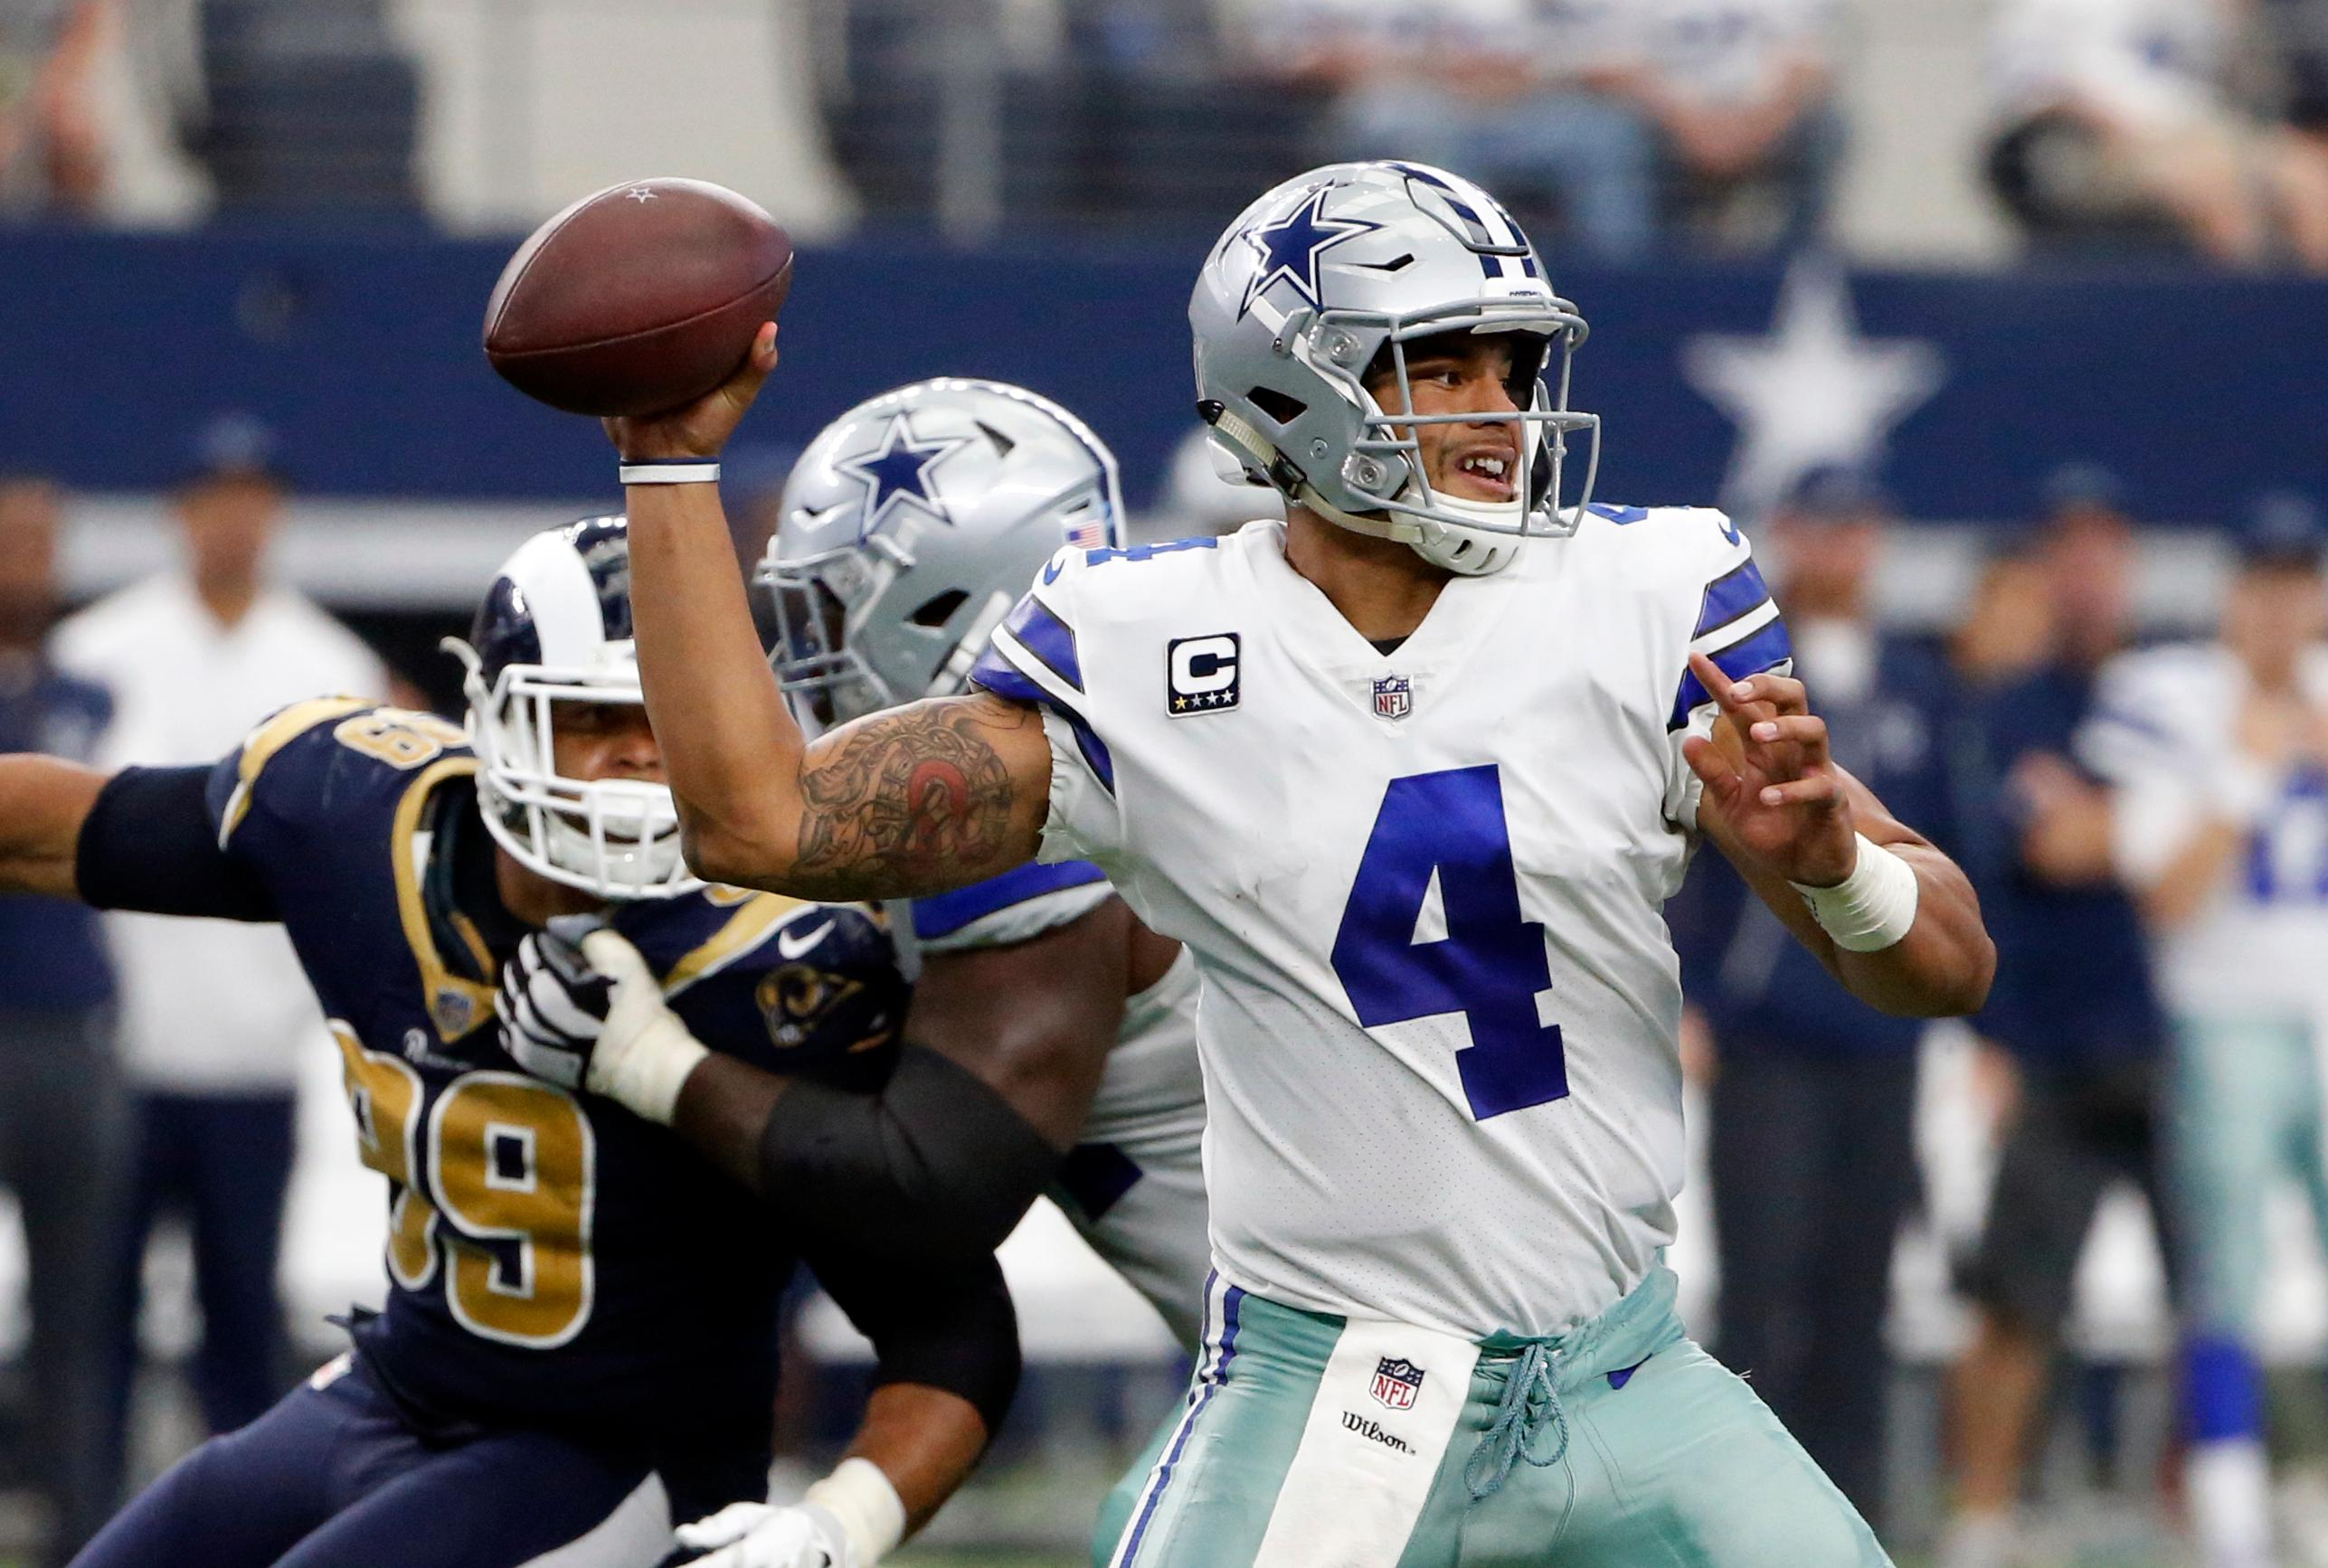 Dallas Cowboys quarterback Dak Prescott (4) throws a pass in the second half of an NFL football game against the Los Angeles Rams on Sunday, Oct. 1, 2017, in Arlington, Texas. (AP Photo/Michael Ainsworth)